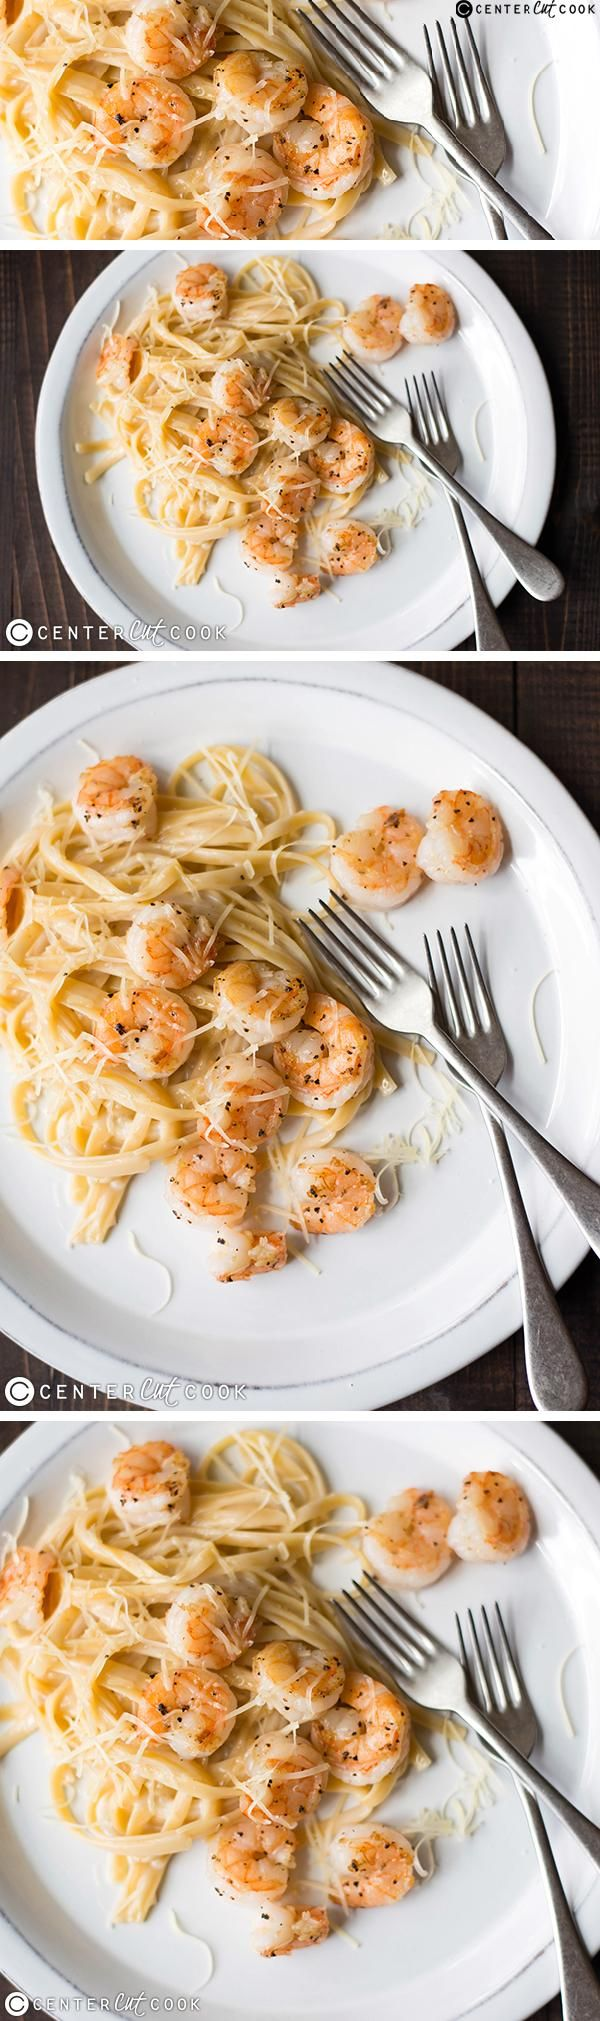 Enjoy a creamy and satisfying SHRIMP FETUCCINI ALFREDO from scratch any night of the week - delicious, easy, and ready in just 30 minutes!